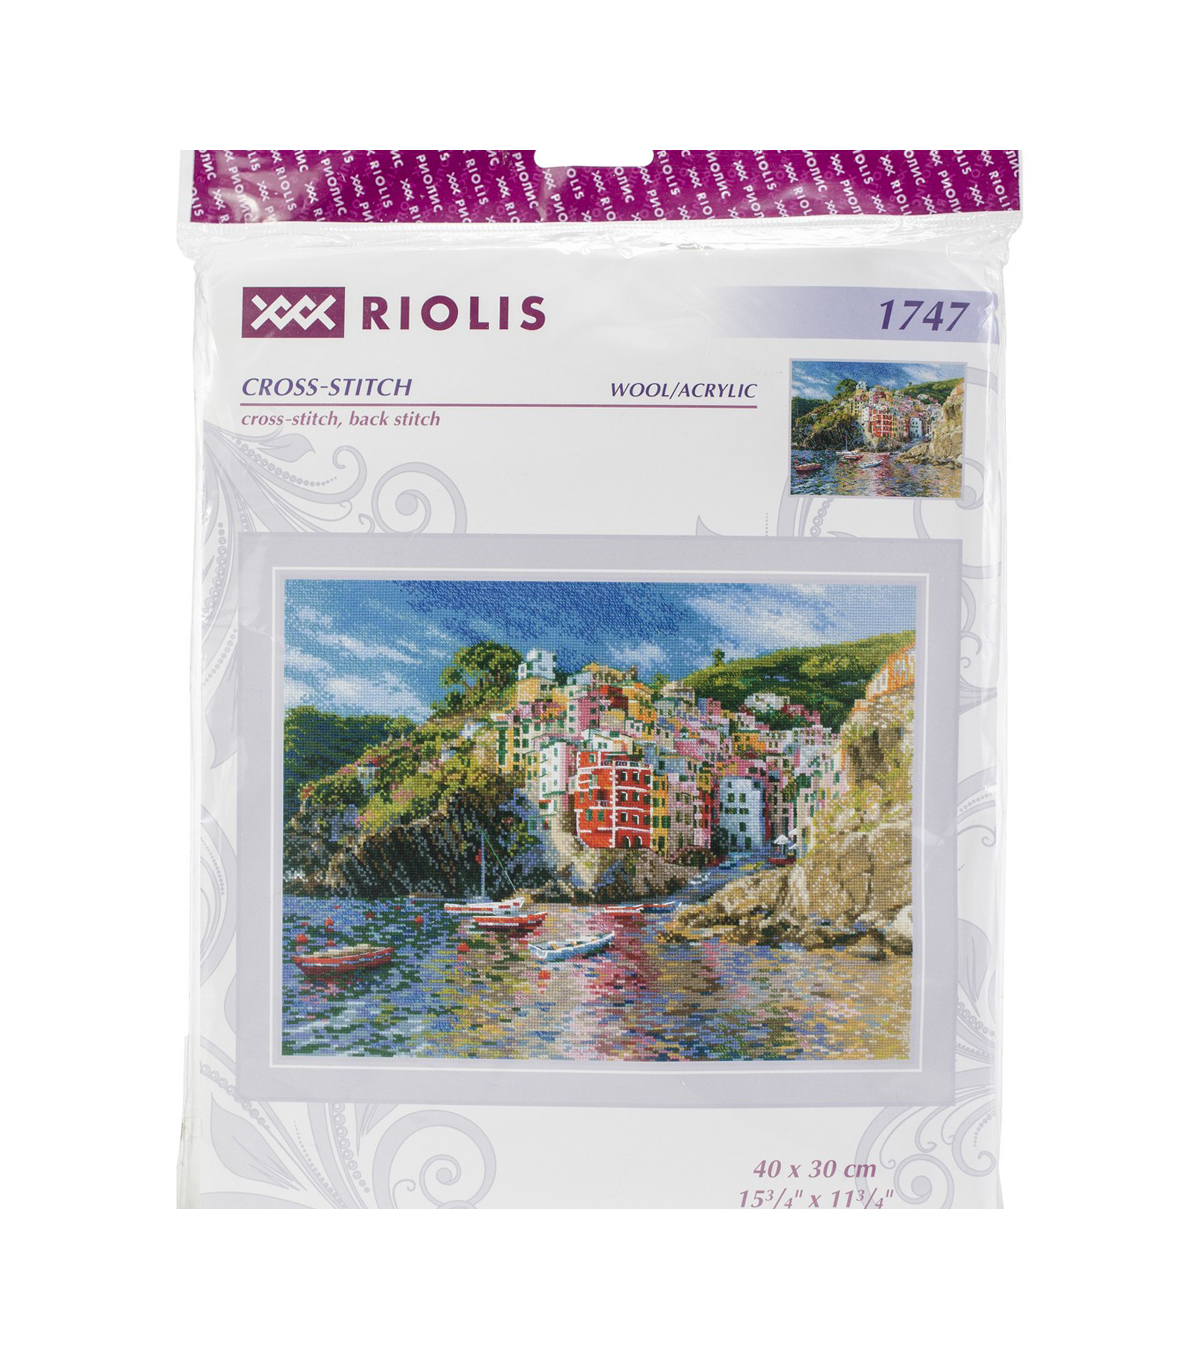 RIOLIS Counted Cross Stitch Kit-Liguria